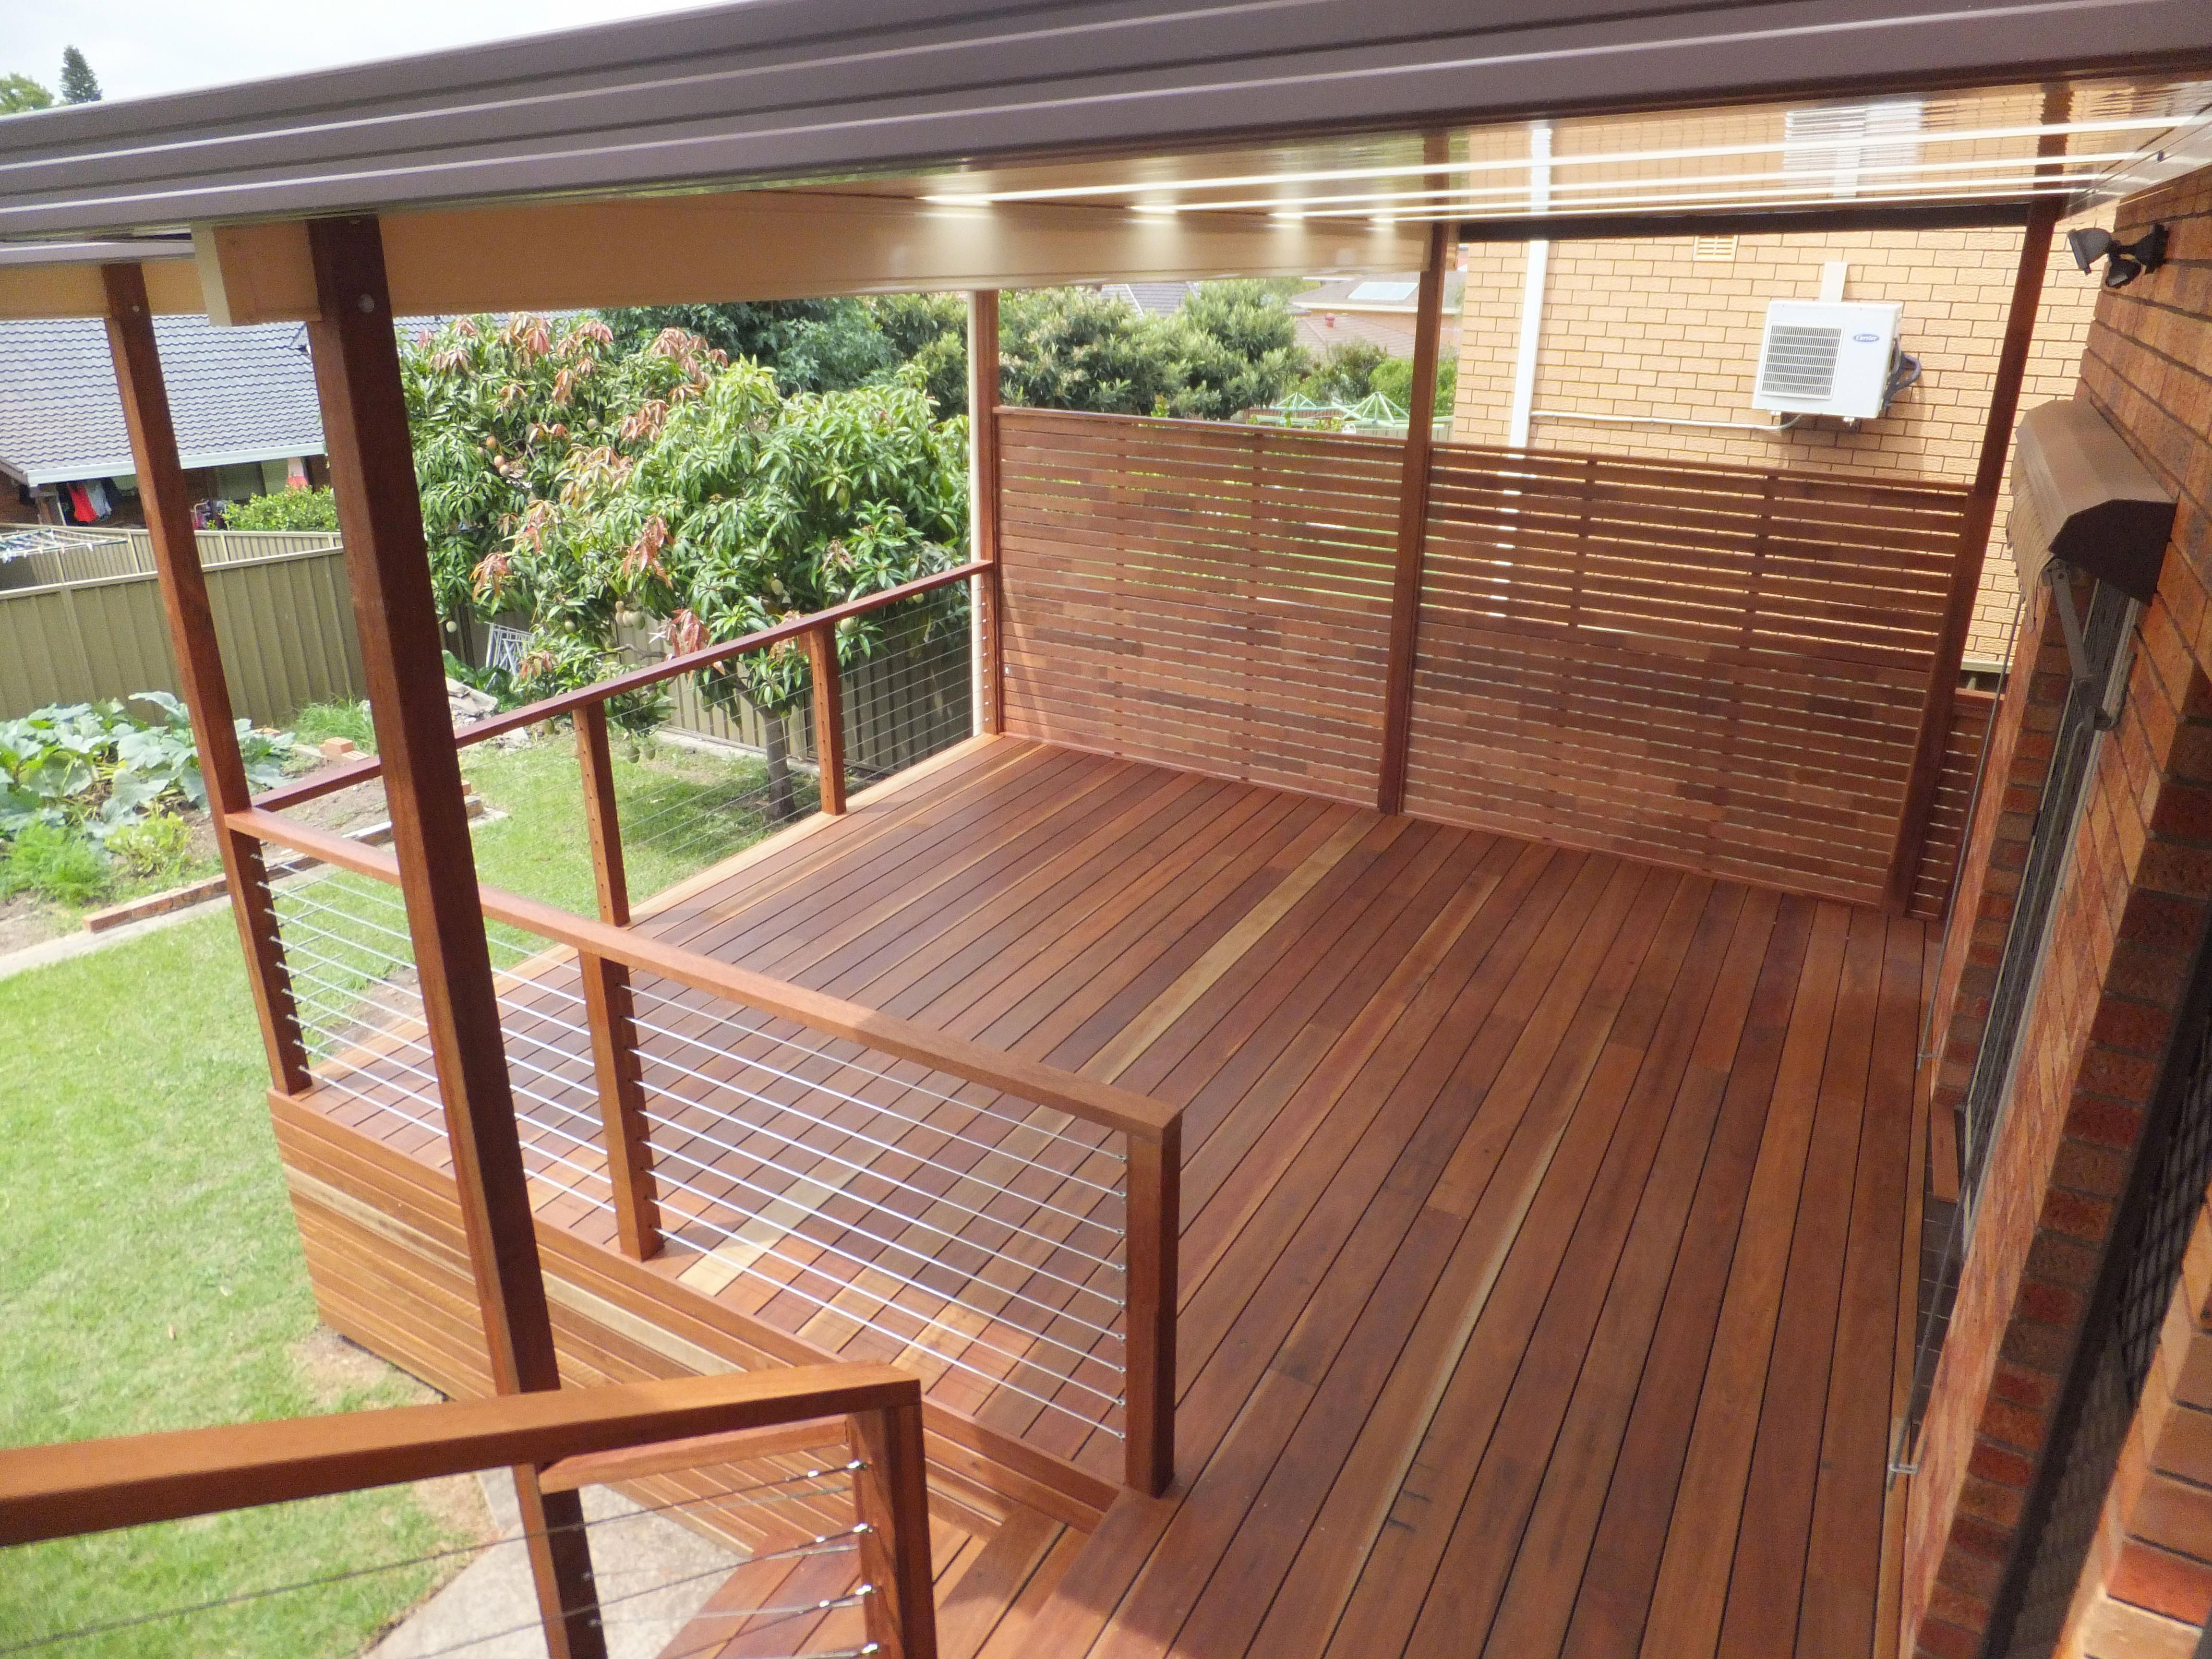 The Beauty Of A Spotted Gum Timber Deck Timber Decking Sydney At Its Best Pergolaforsmallpatio Patio Railing Privacy Screen Deck Deck Designs Backyard